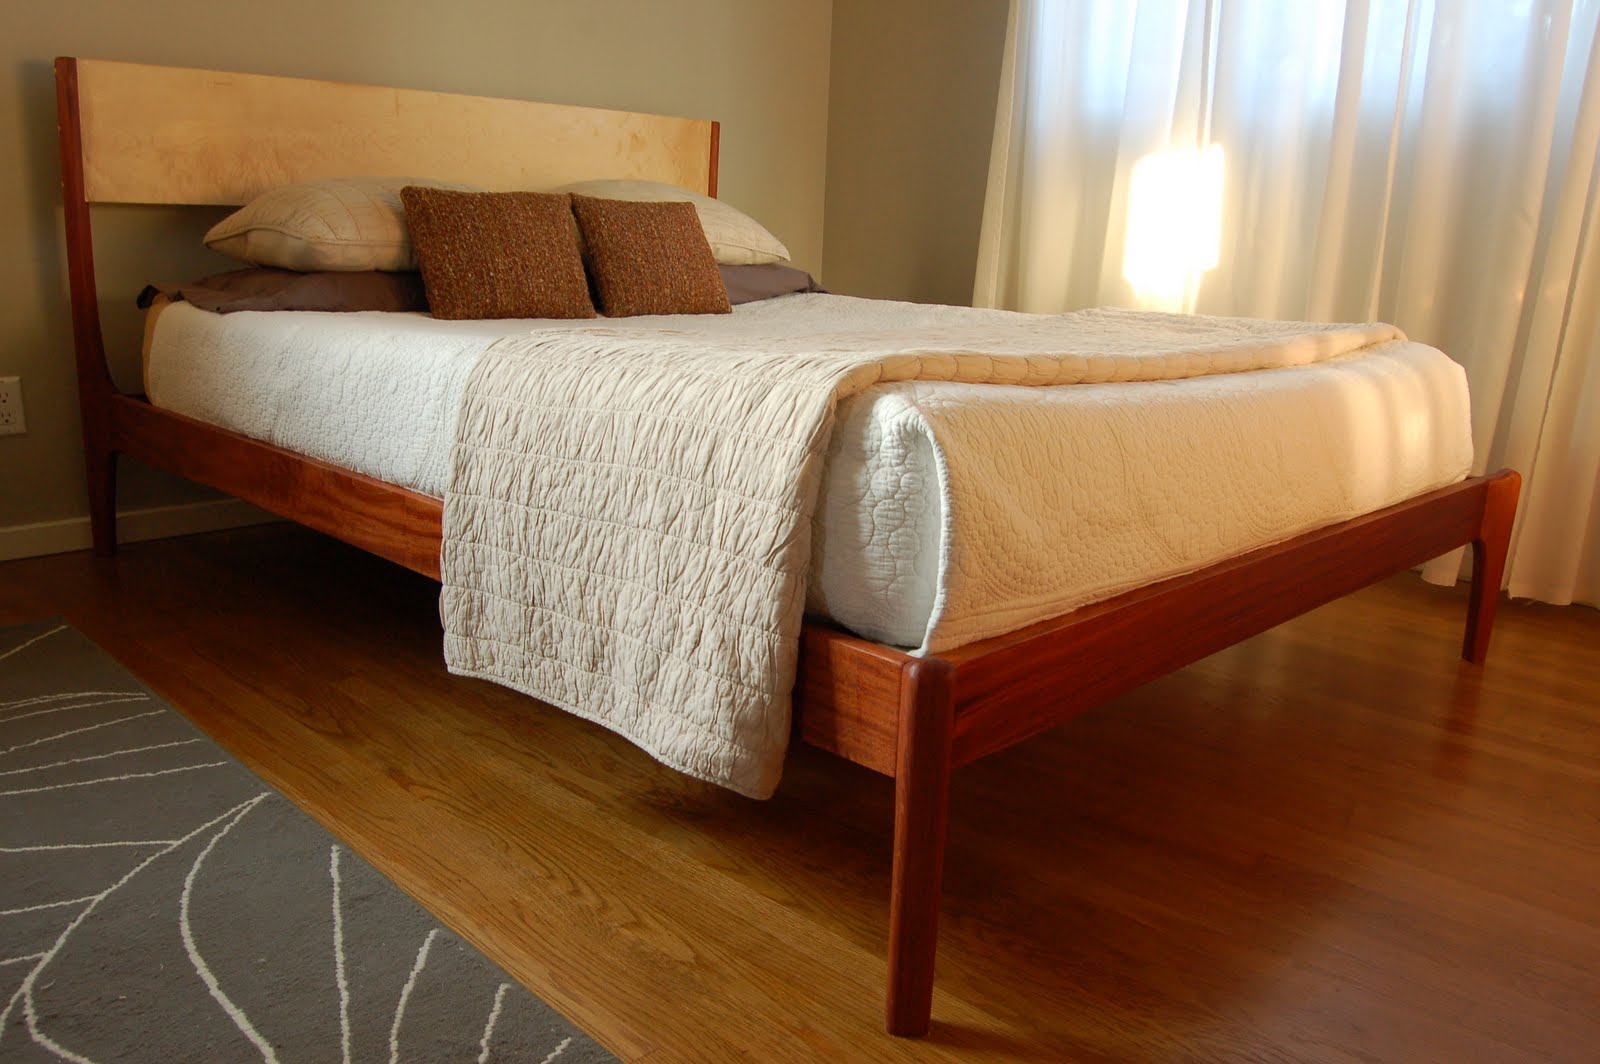 Danish Bedroom Furniture, Danish platform bed